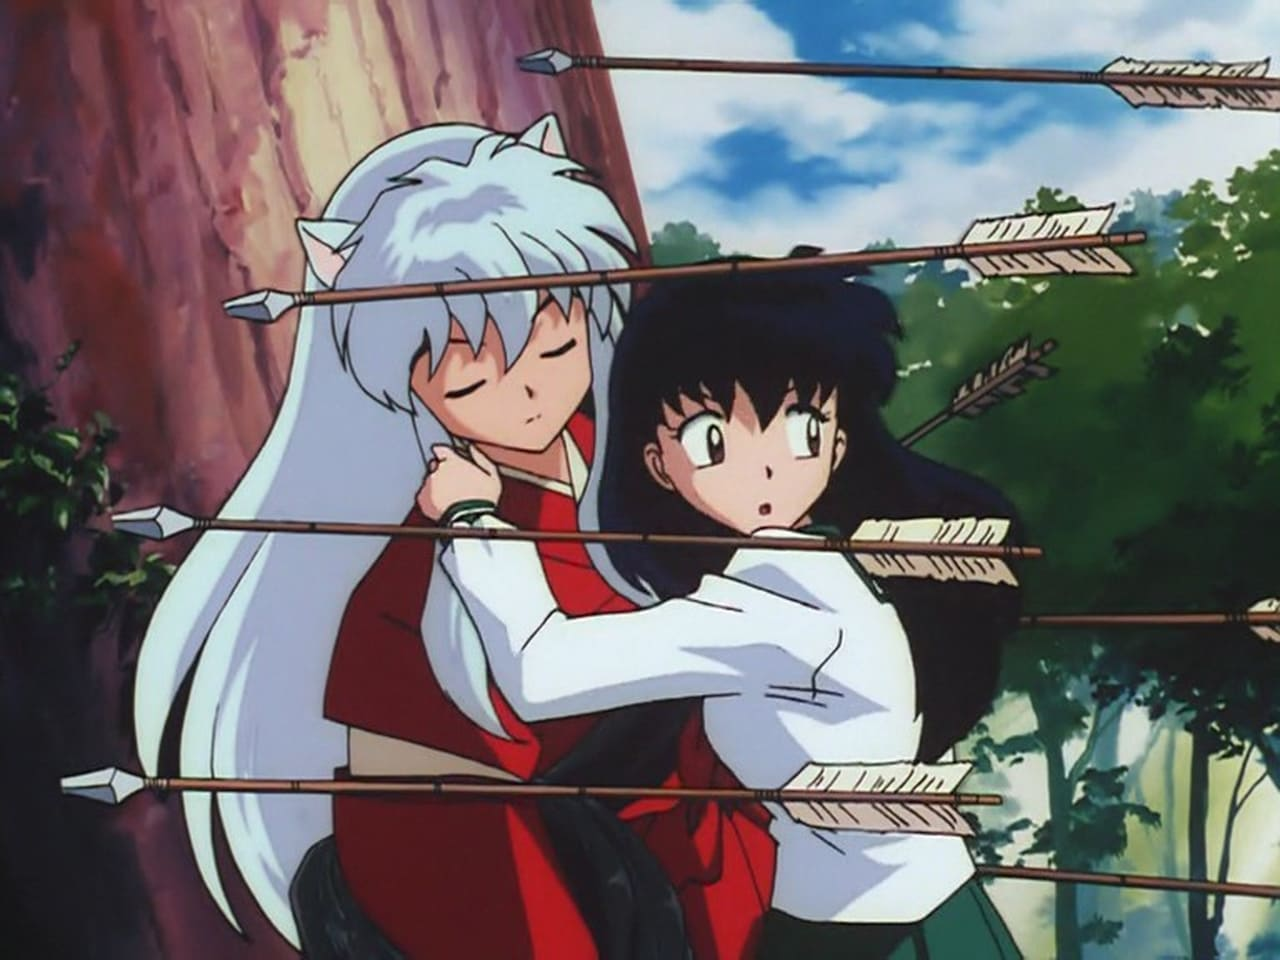 InuYasha - Season 1 Episode 1 : The Girl Who Overcame Time... and the Boy Who Was Just Overcome (2010)